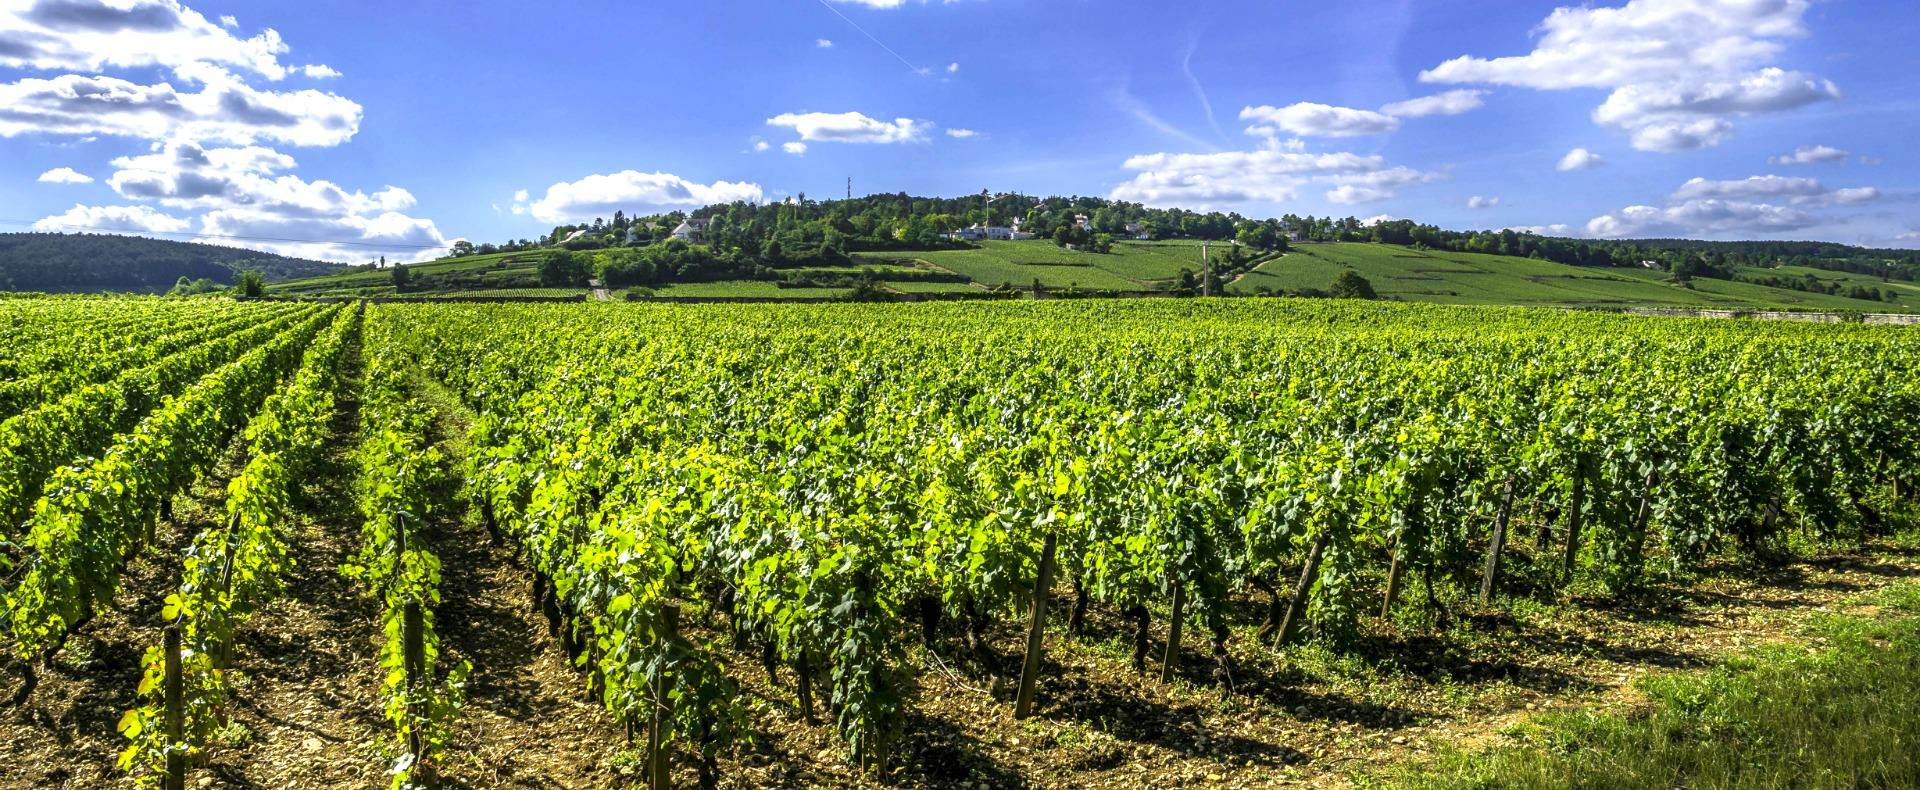 France vineyards